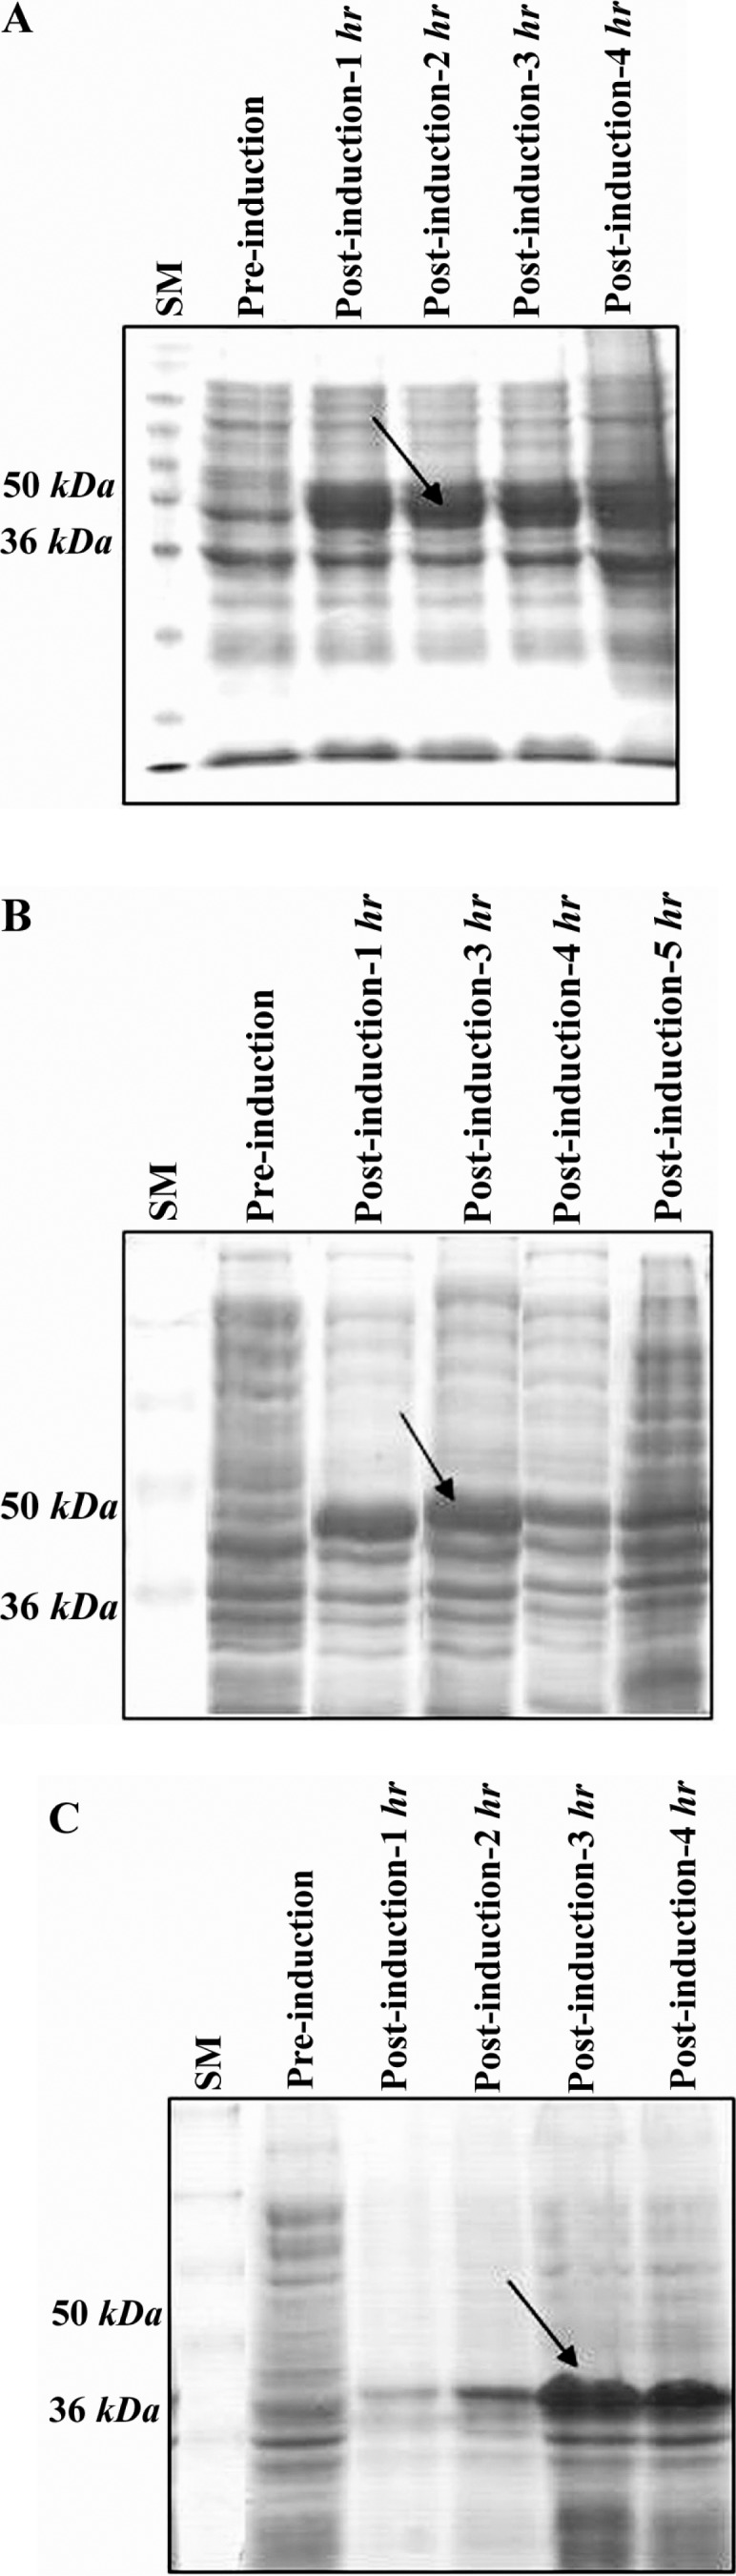 Induction of rFHA1; A), rFHA2; B) and rFHA3; C) proteins expression in E. coli BL21 (DE3). IPTG was added to a logarithmic liquid culture of transformed bacteria at 1 mM concentration when OD 600nm was 0.6. Pre-induction and post-induction samples were collected at different time points and run on 12% SDS-PAGE followed by Coomassie blue staining. The arrow in the middle of the gel shows the expected target protein molecular weight (∼ 40 kDa ); SM: protein size marker